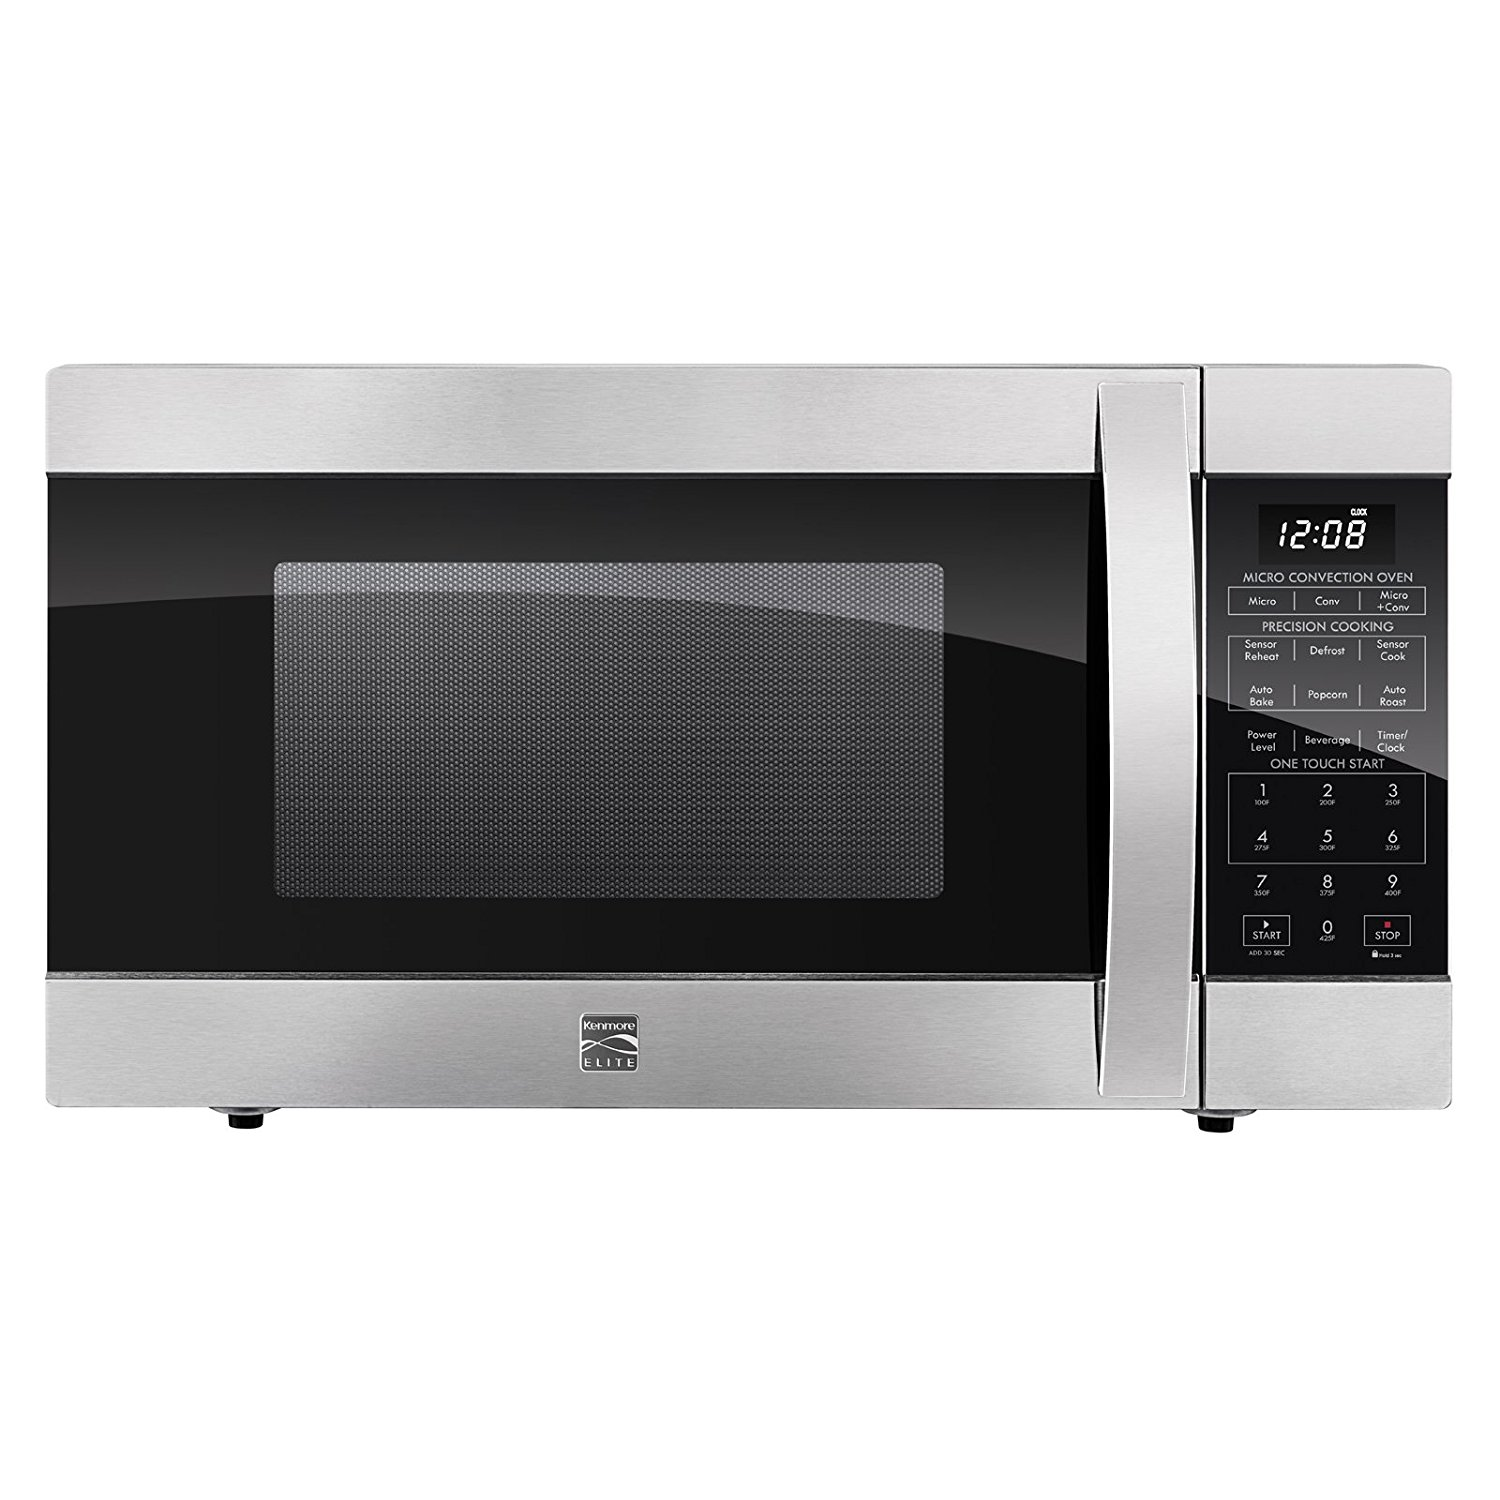 Kenmore 1.5 cu ft Convection Microwave Oven Combo 77603